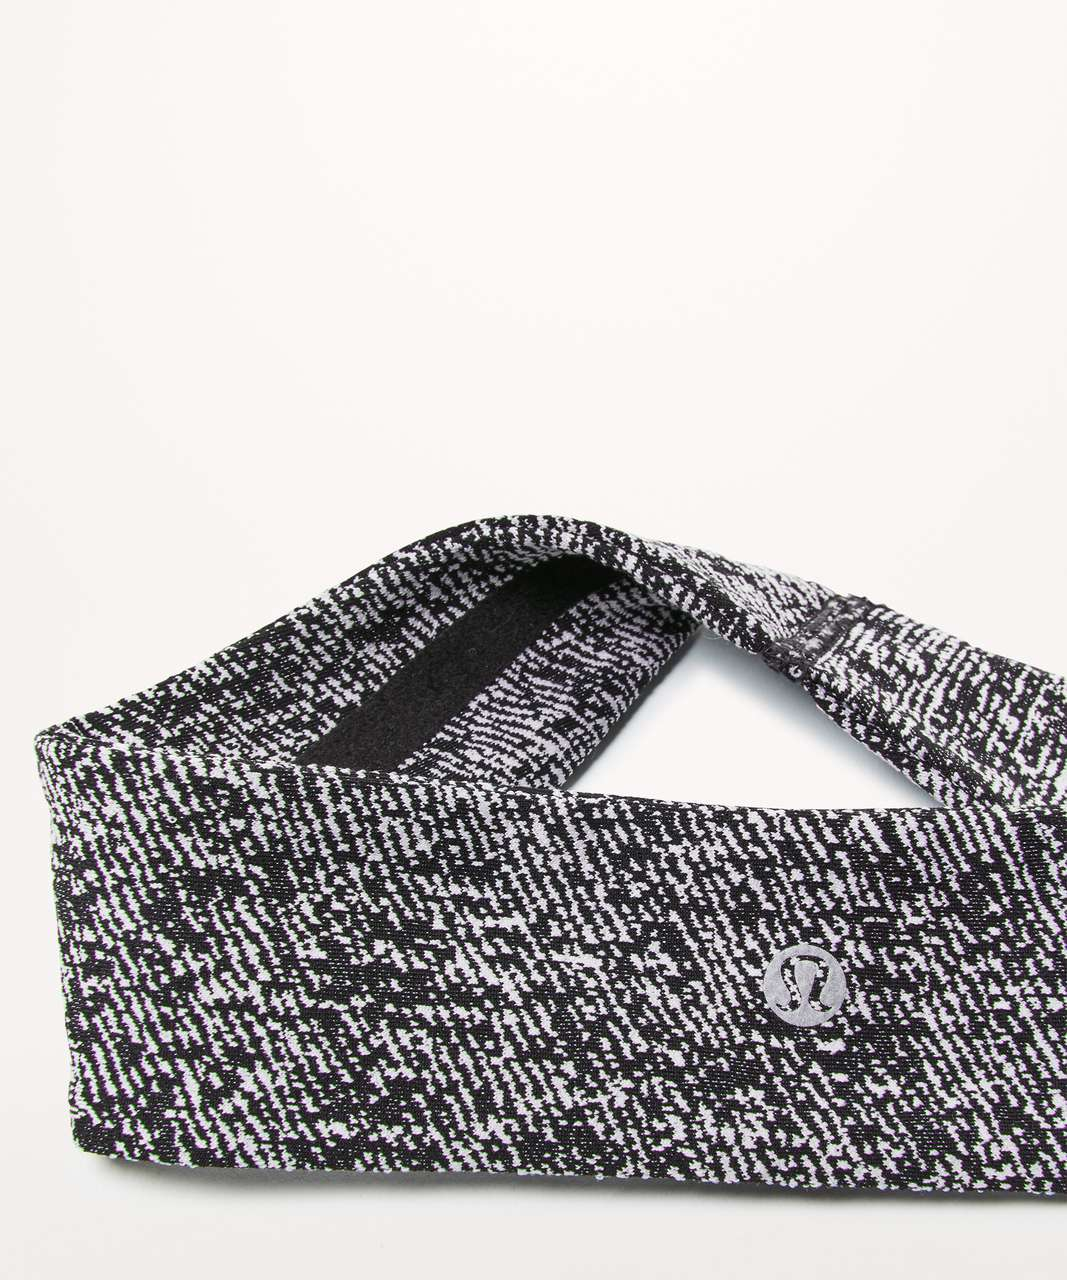 Lululemon Fly Away Tamer Headband II *Luxtreme - Power Luxtreme Irregular Denim Twill Black White